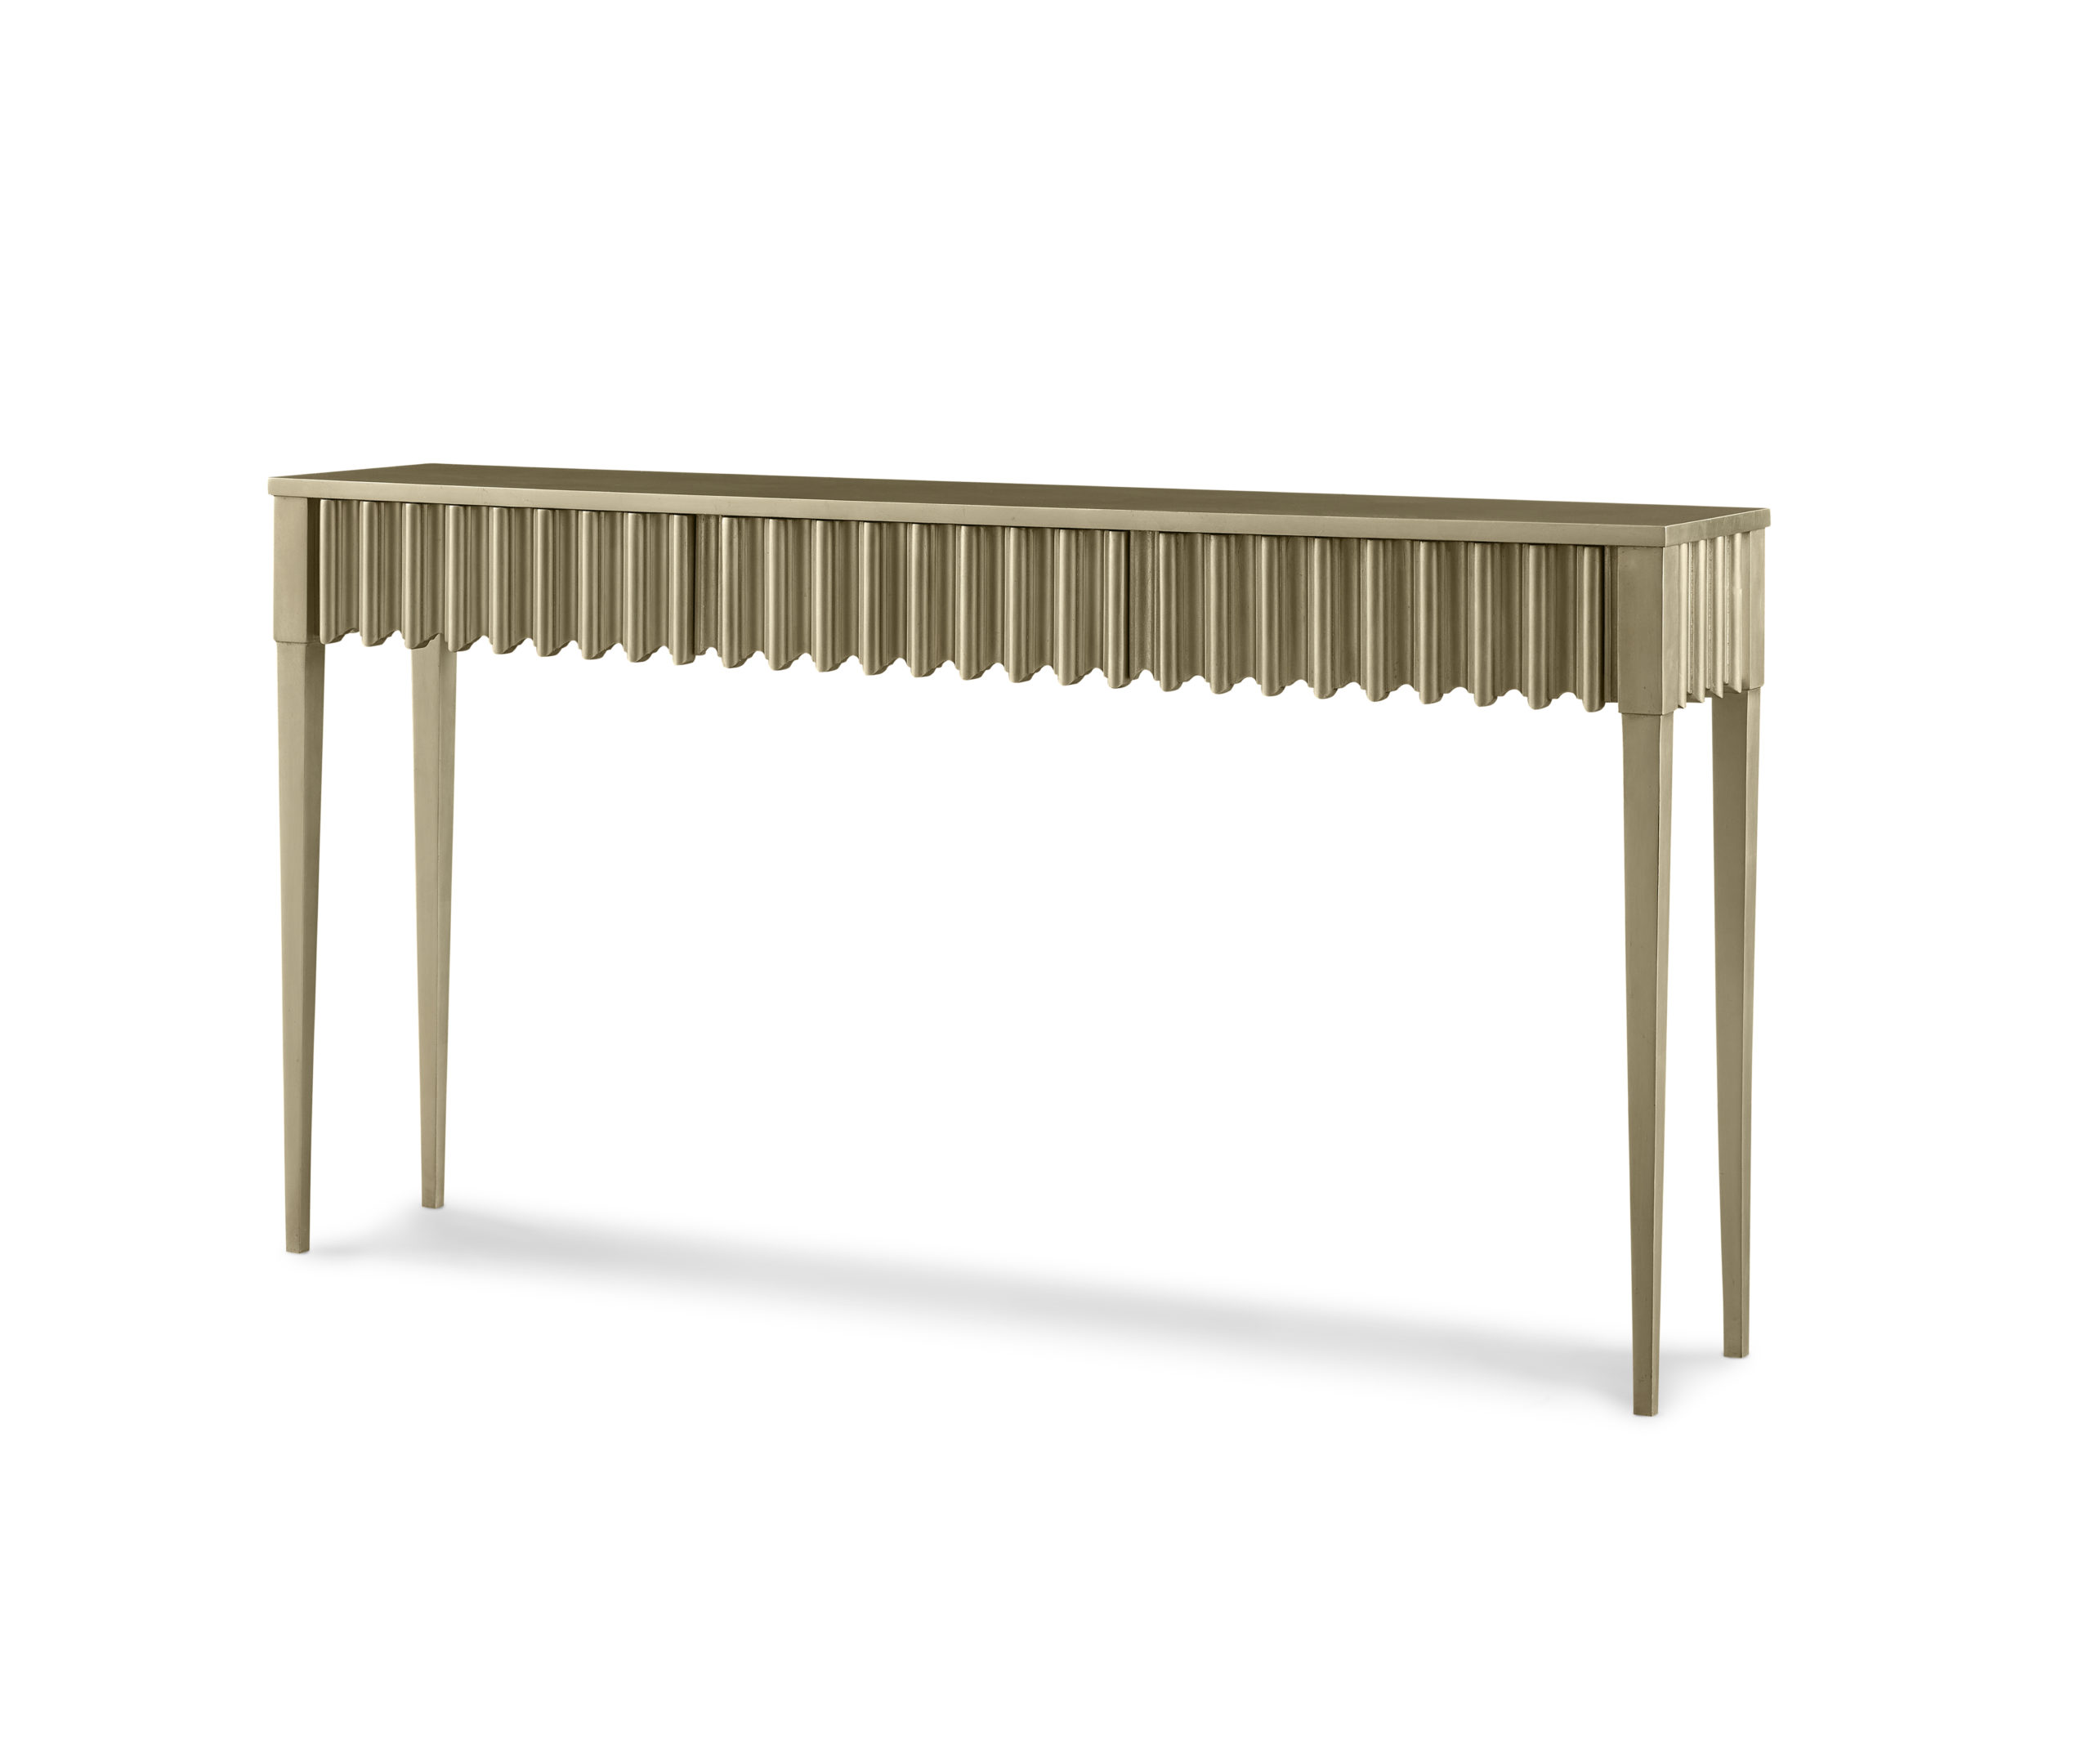 Baker_products_WNWN_reese_console_table_BAA3264_FRONT_3QRT-scaled-2